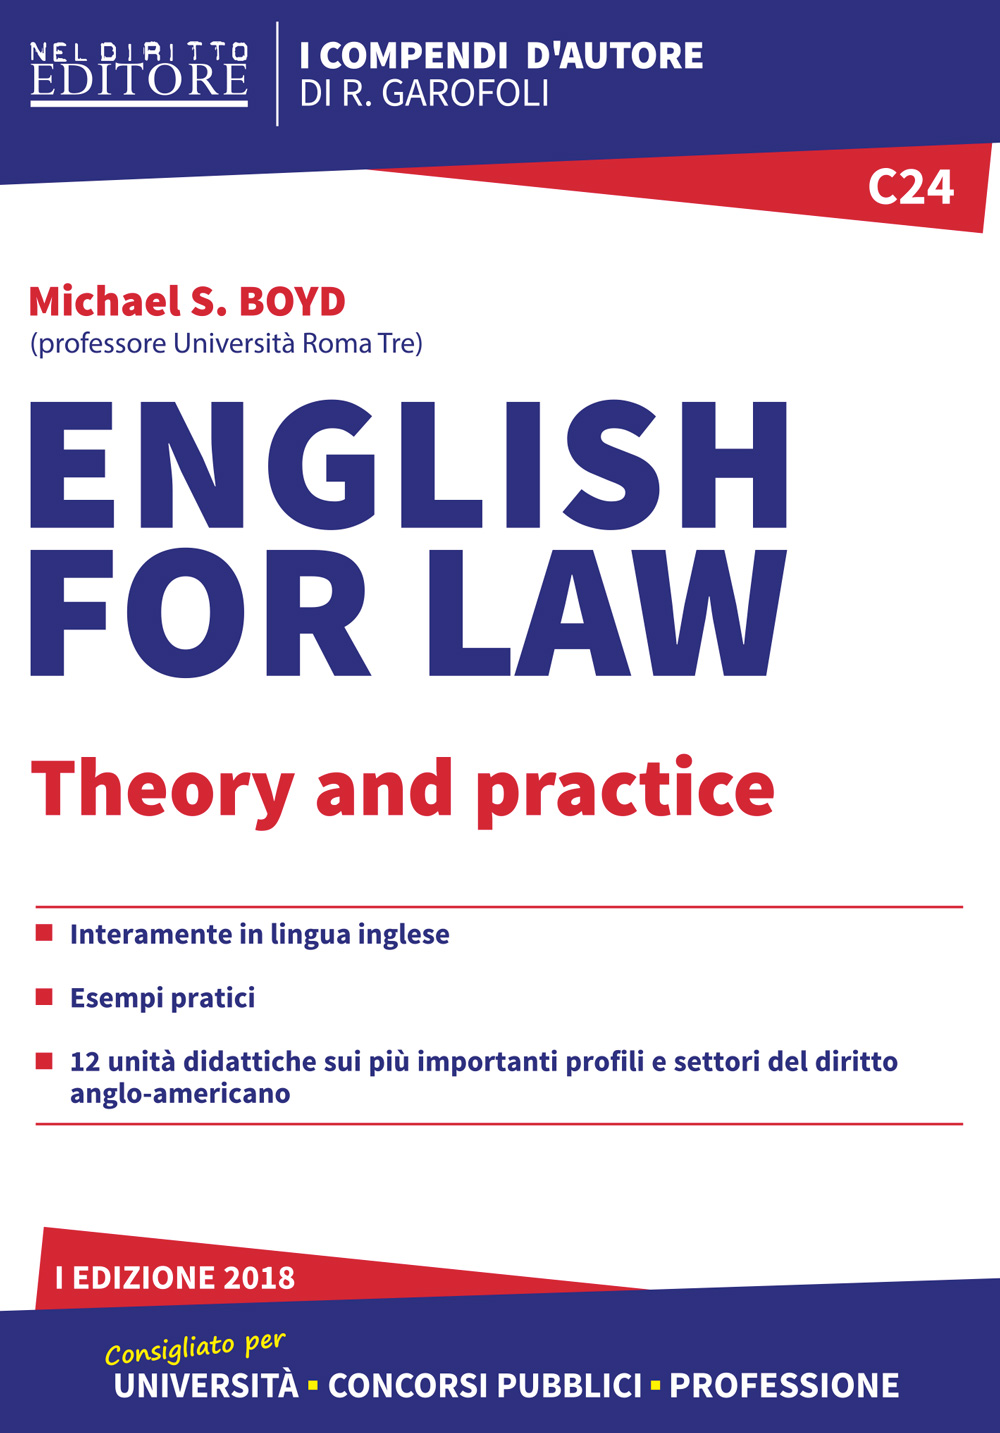 C24 - English for law